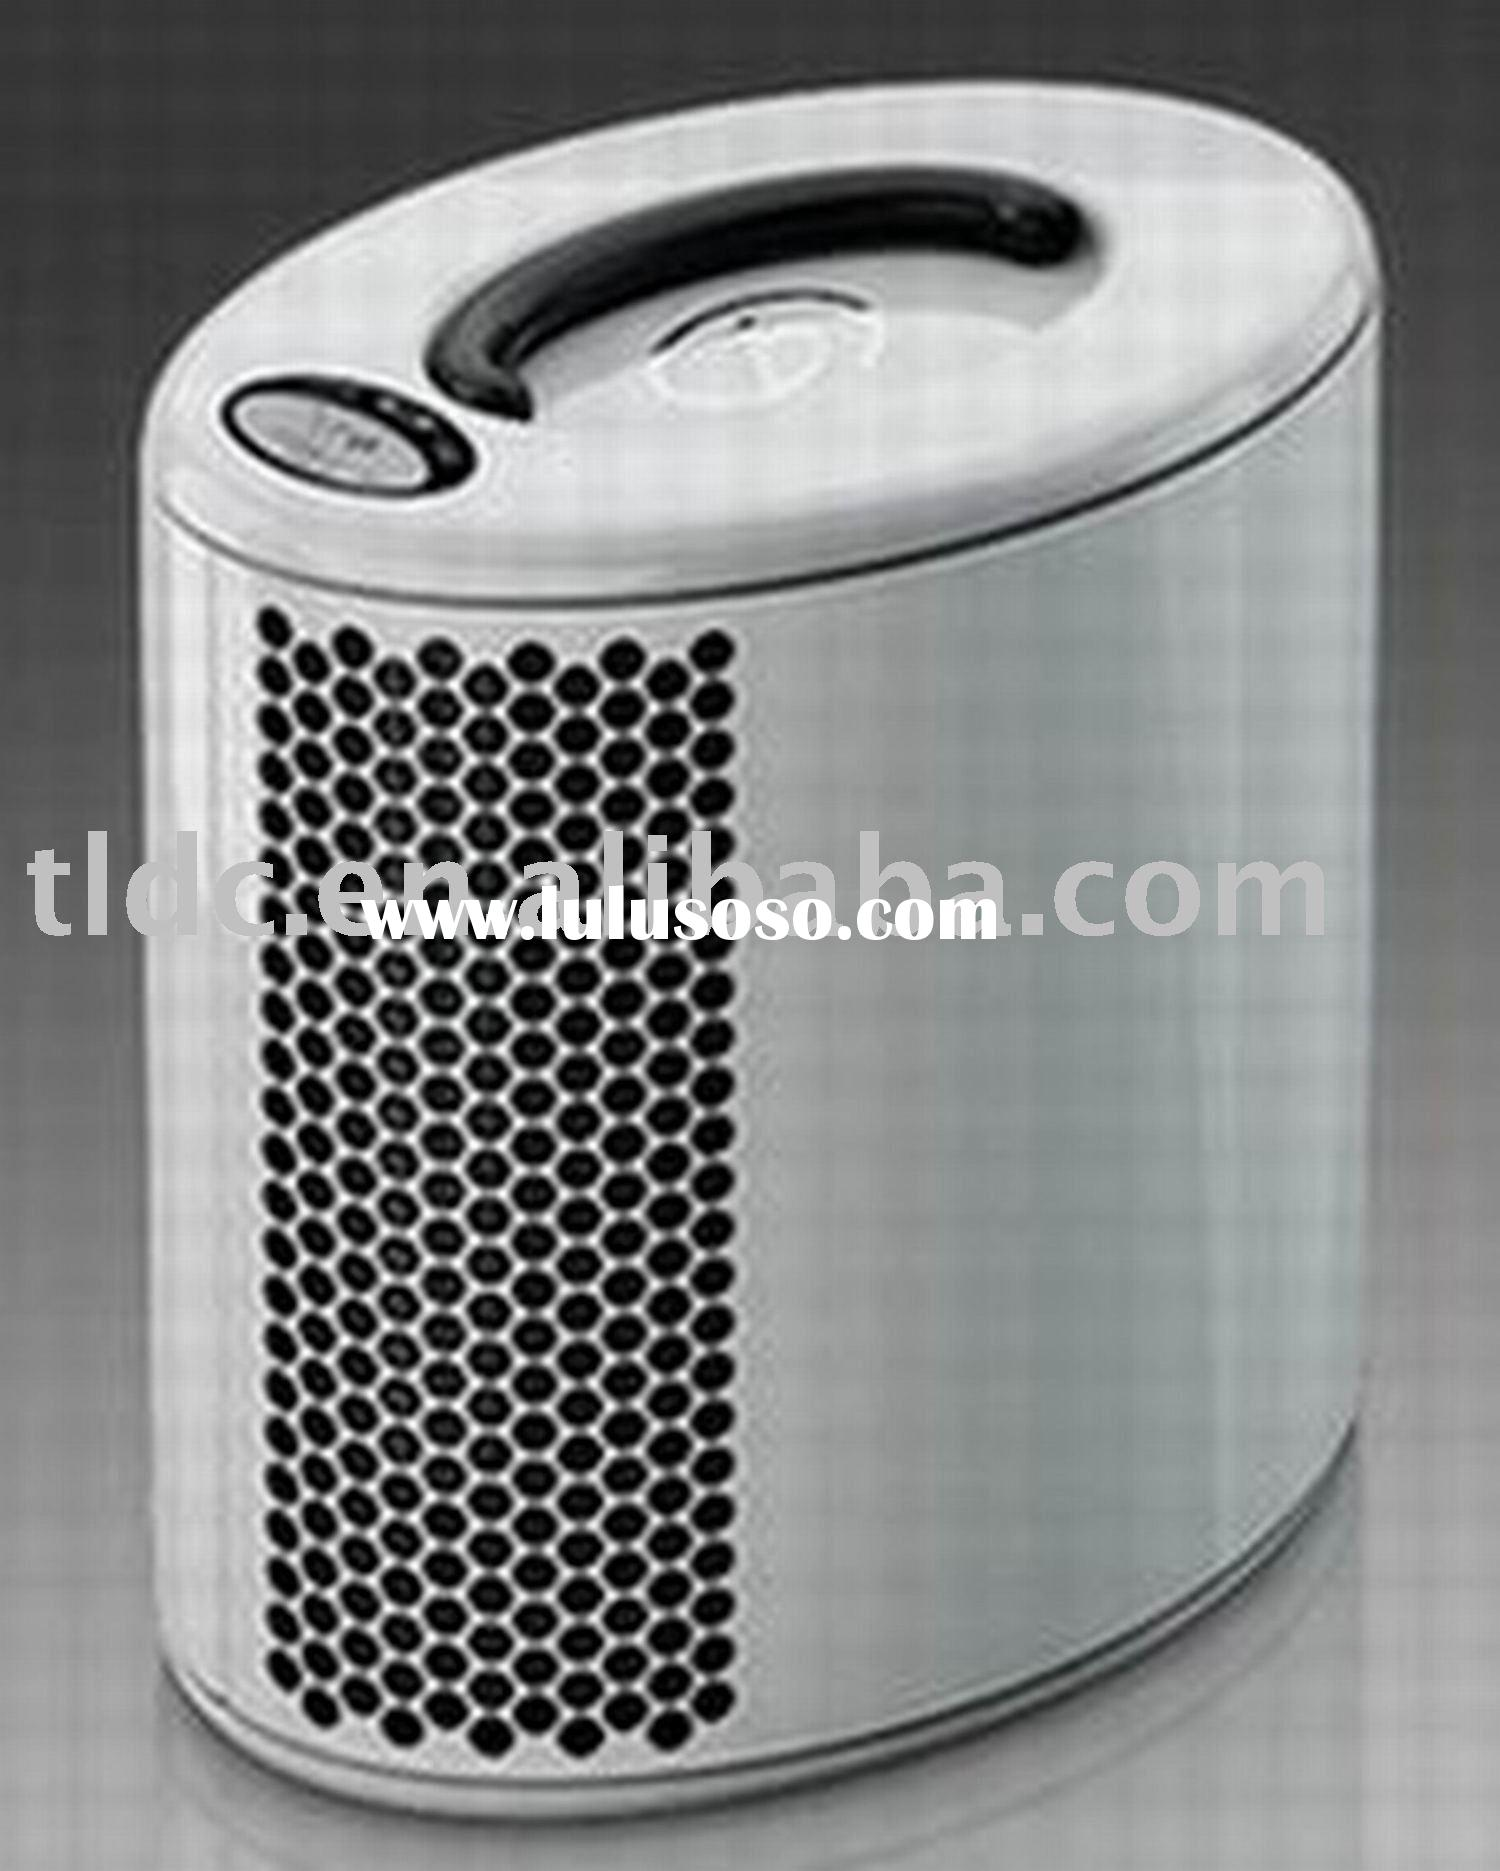 BROAD TB100 Air Purifier and home air cleaner and portable air freshener